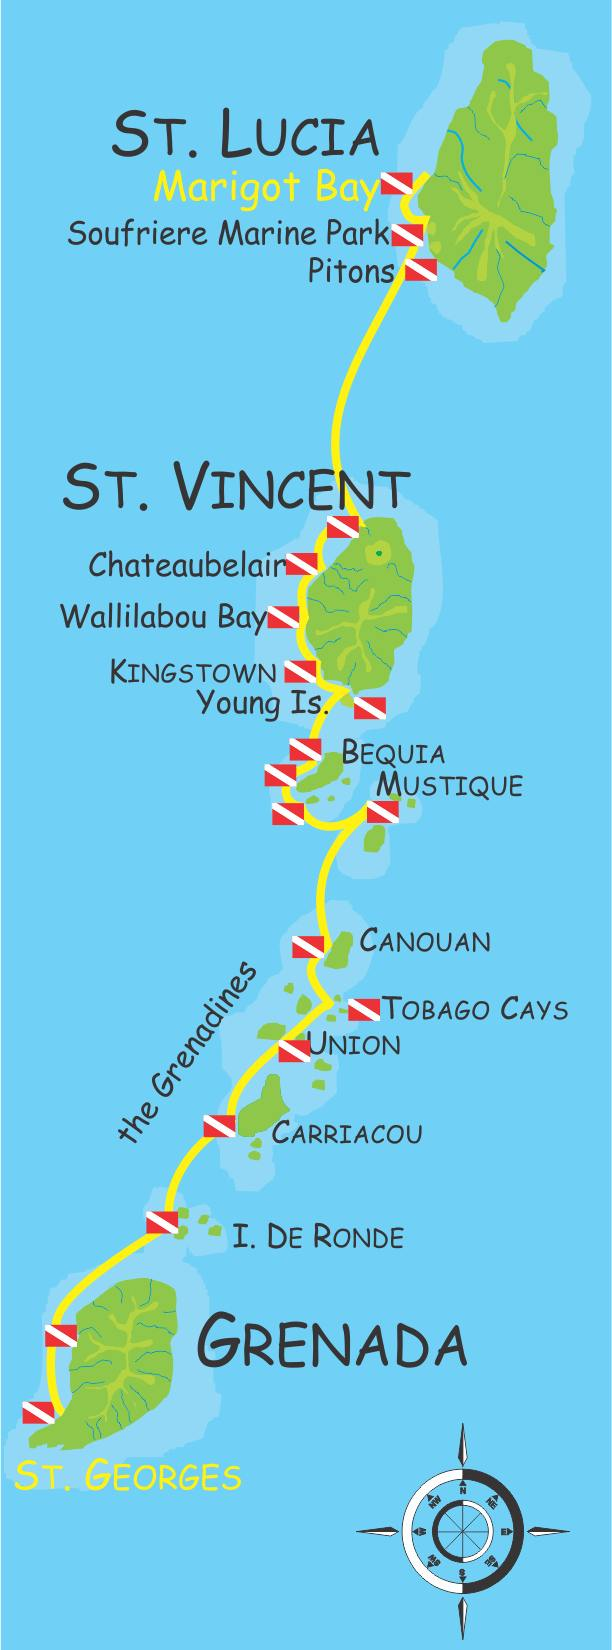 Grenadines island chain windwards BWI